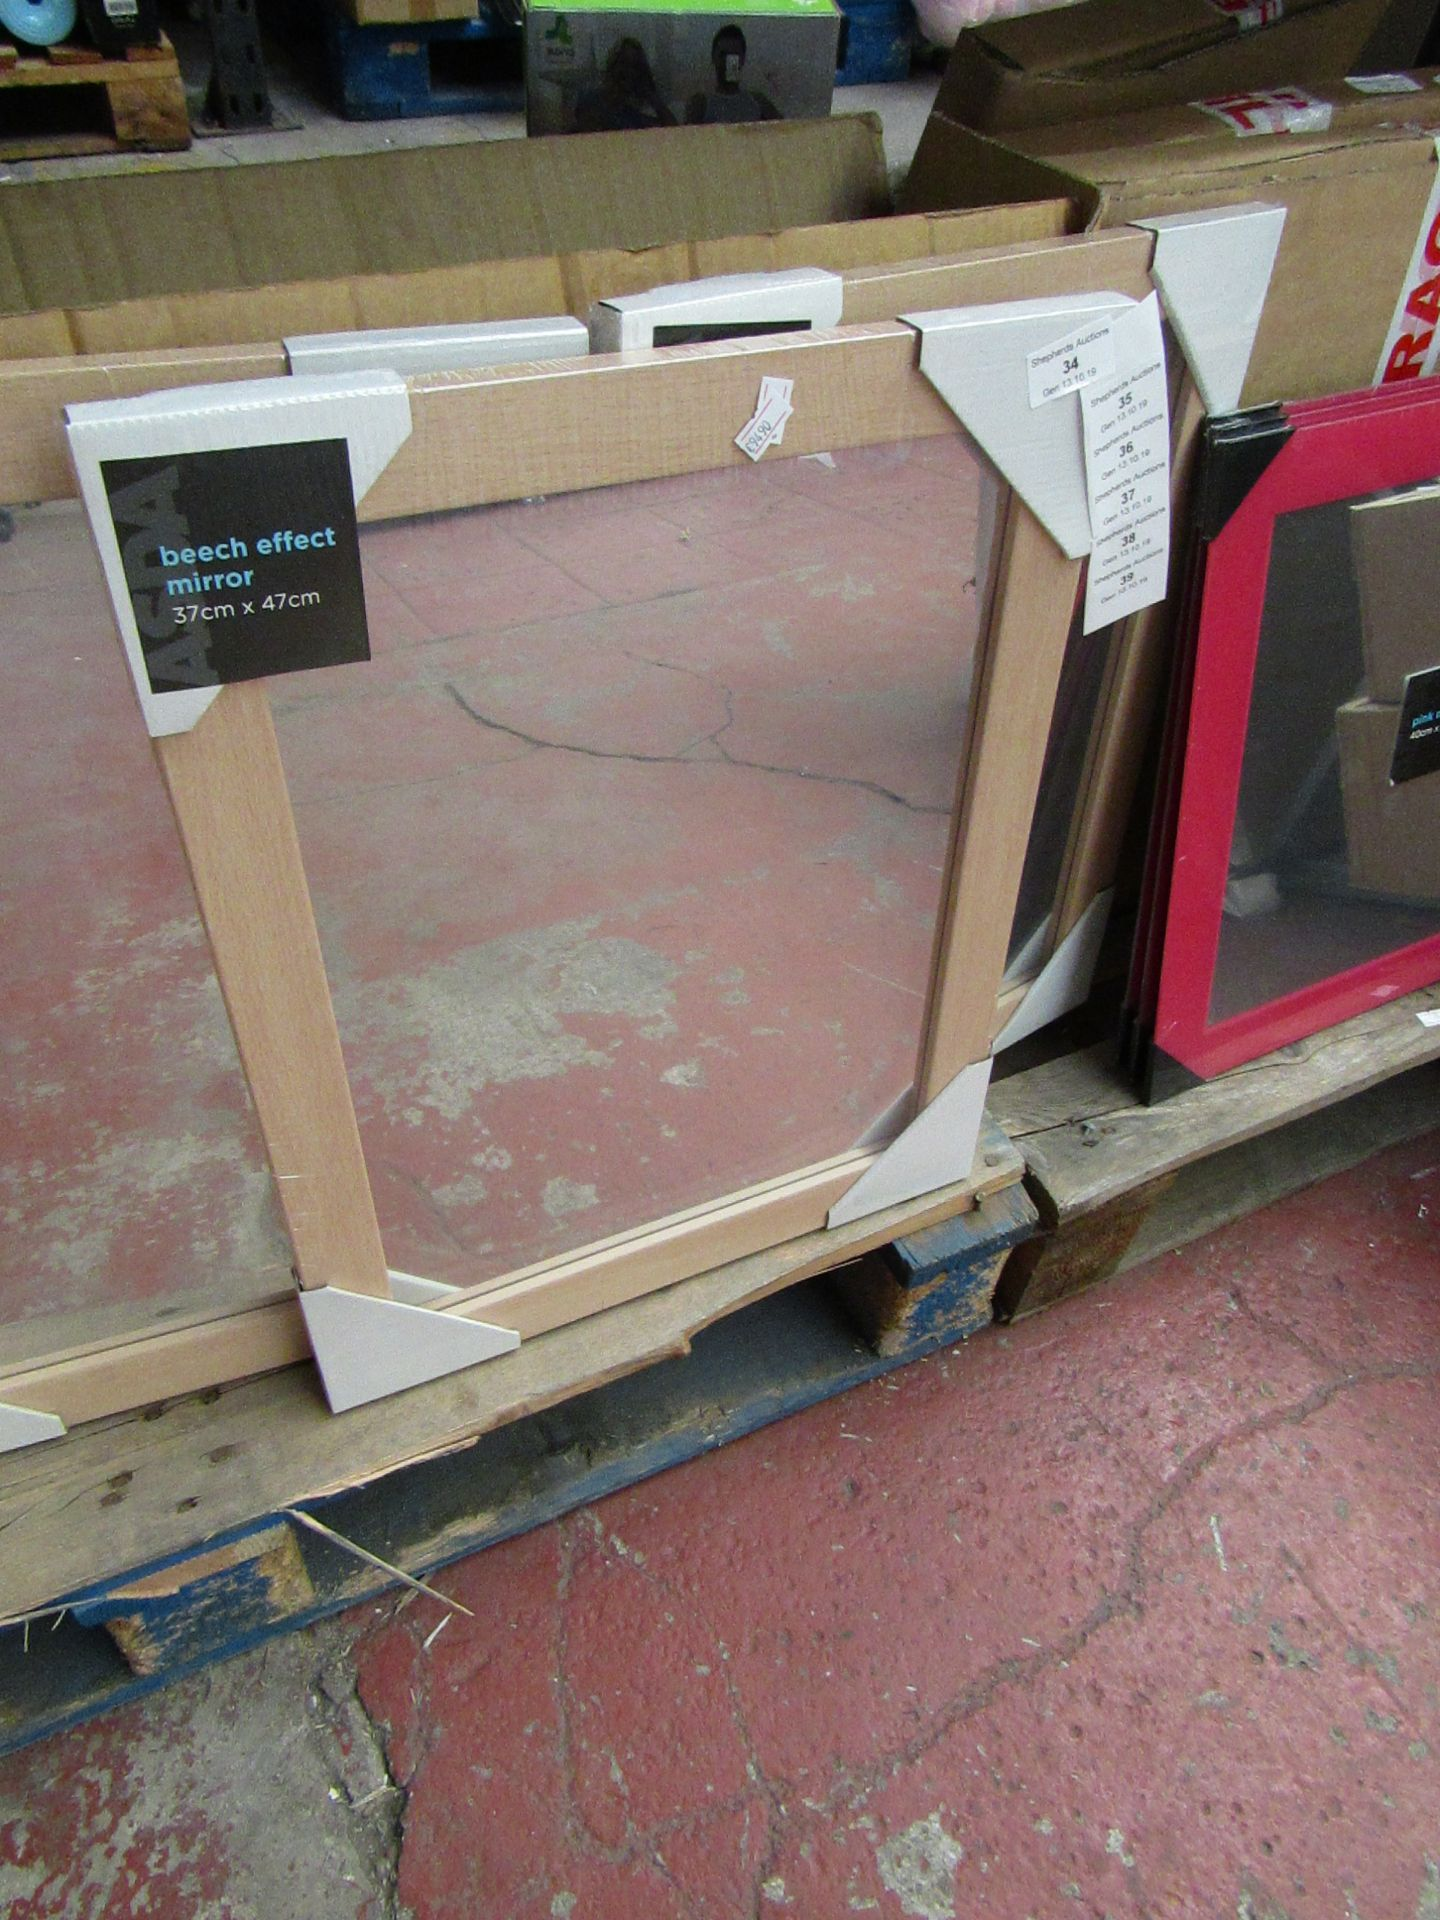 Lot 37 - Beech effect mirror, 37 x 47cm, new and packaged.